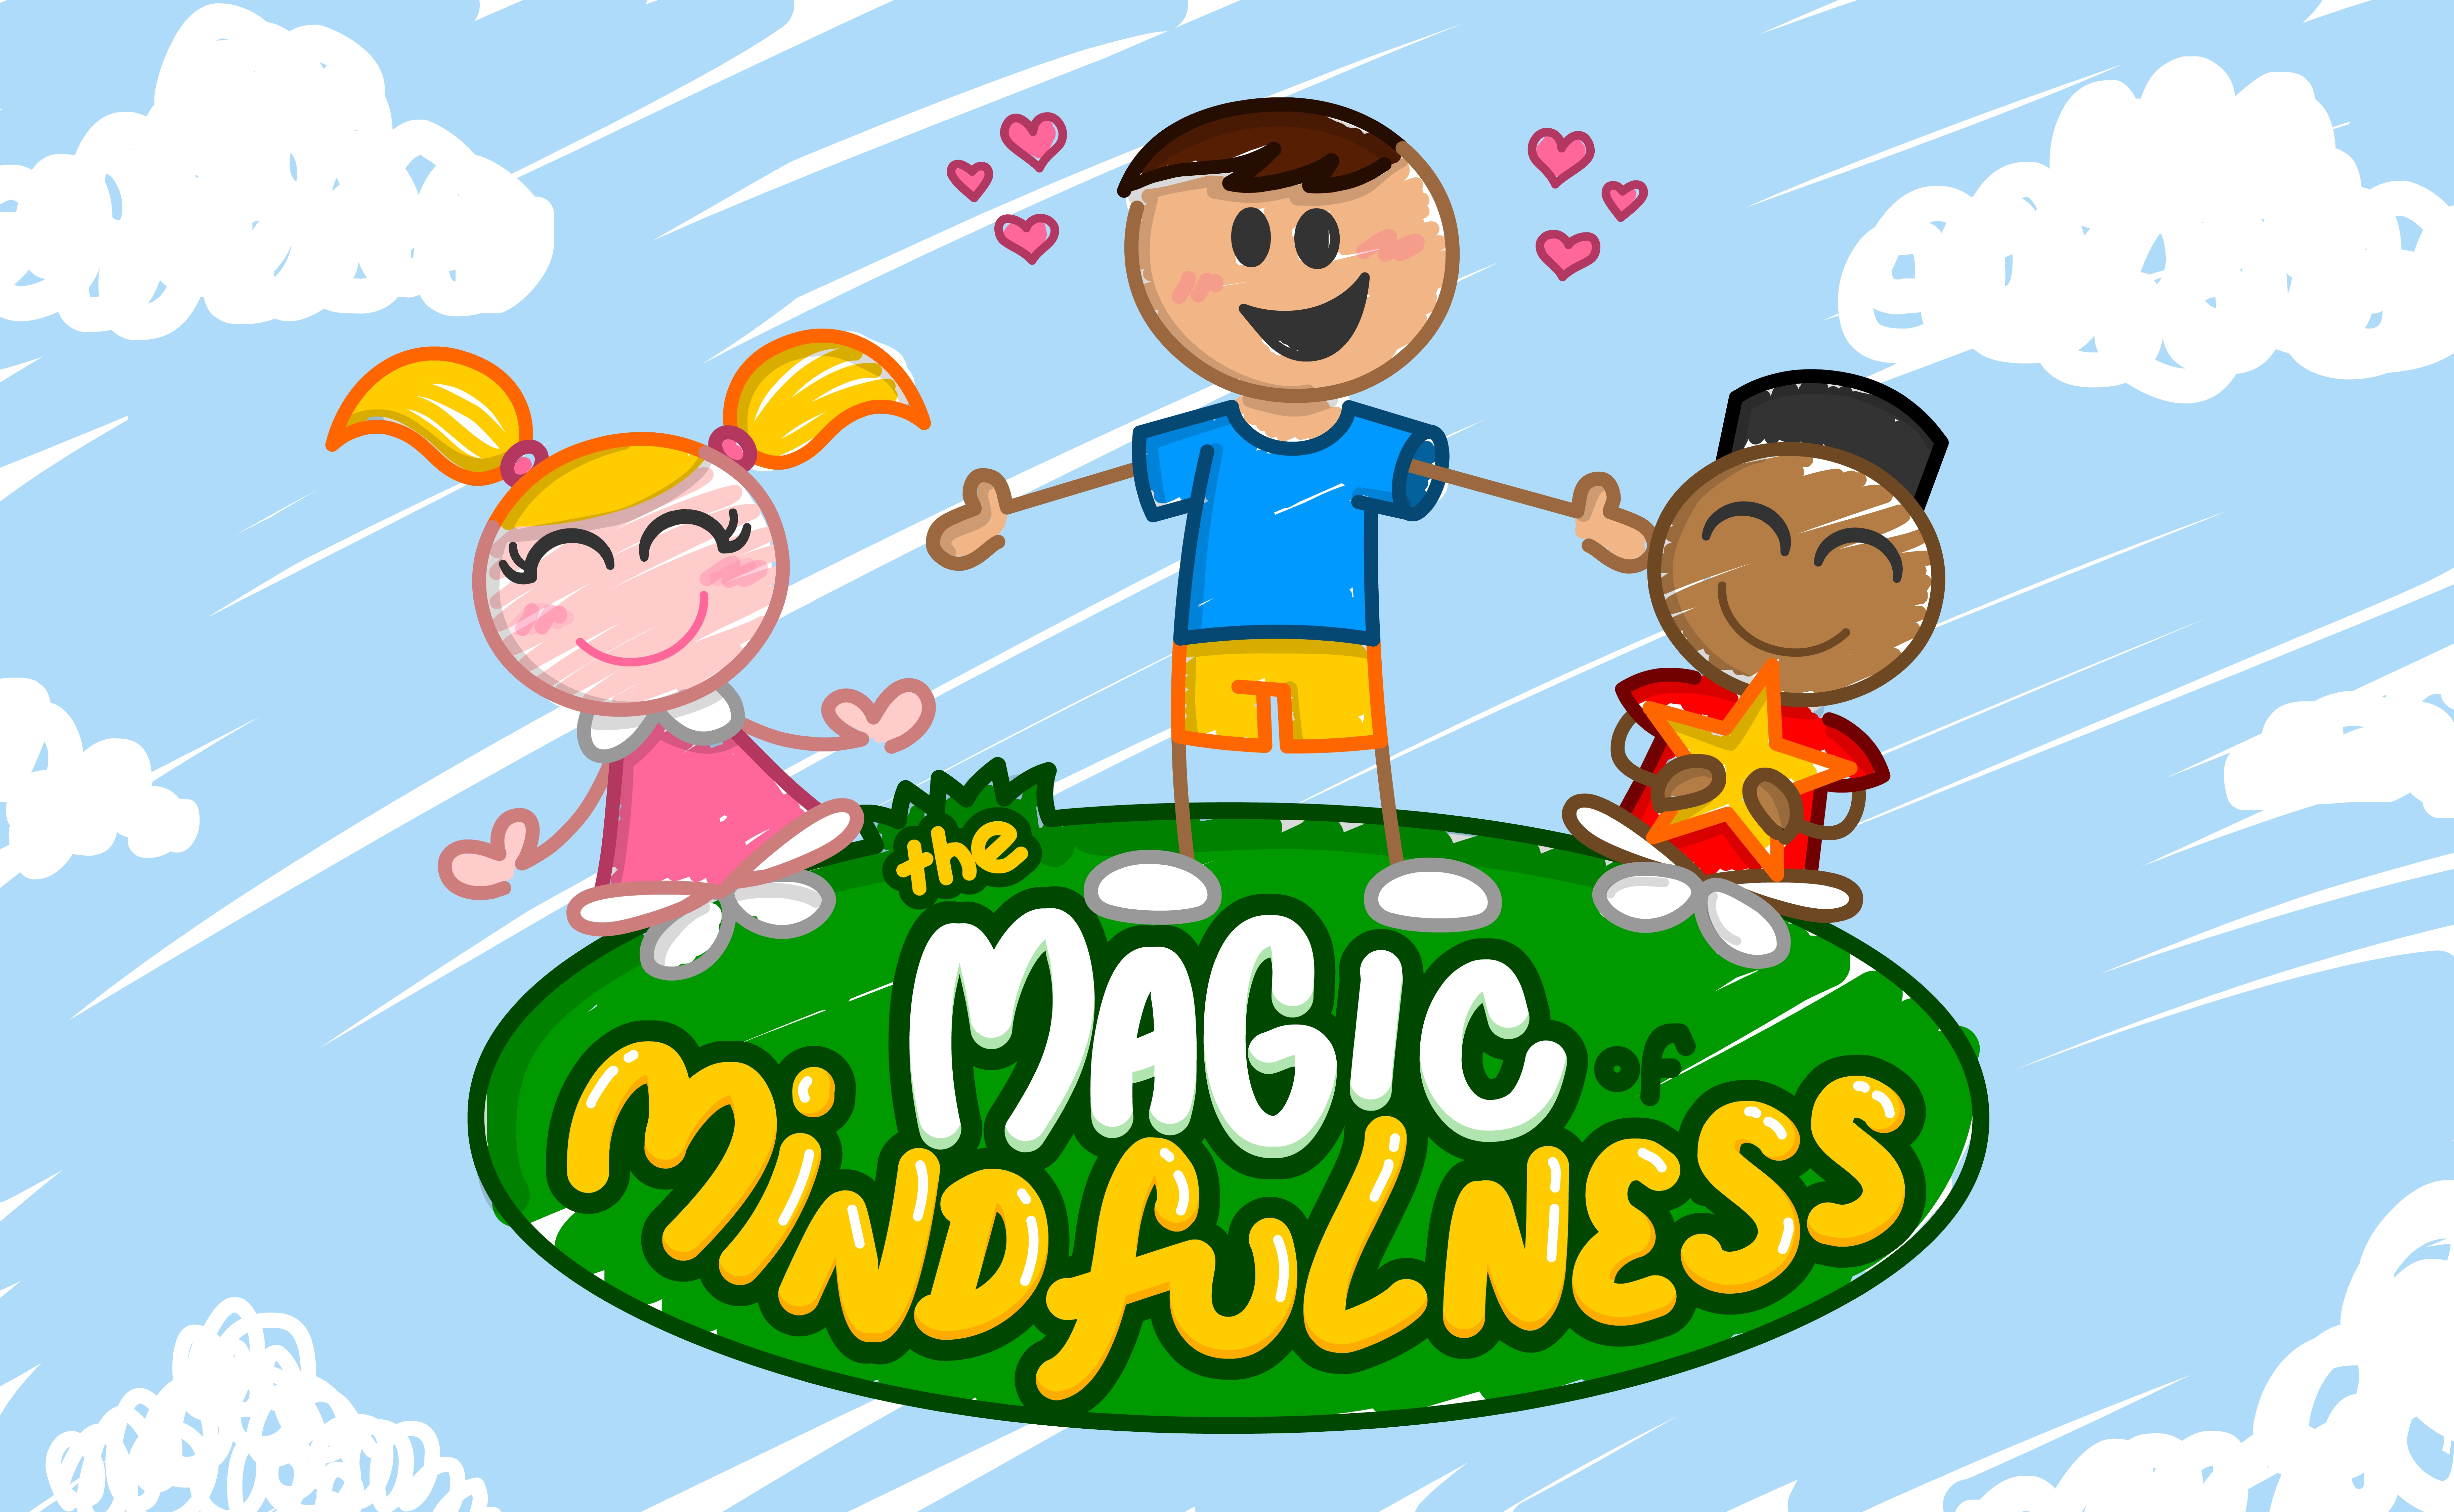 The Magic of Mindfulness - Mindfulness for Key Stage 1 Children